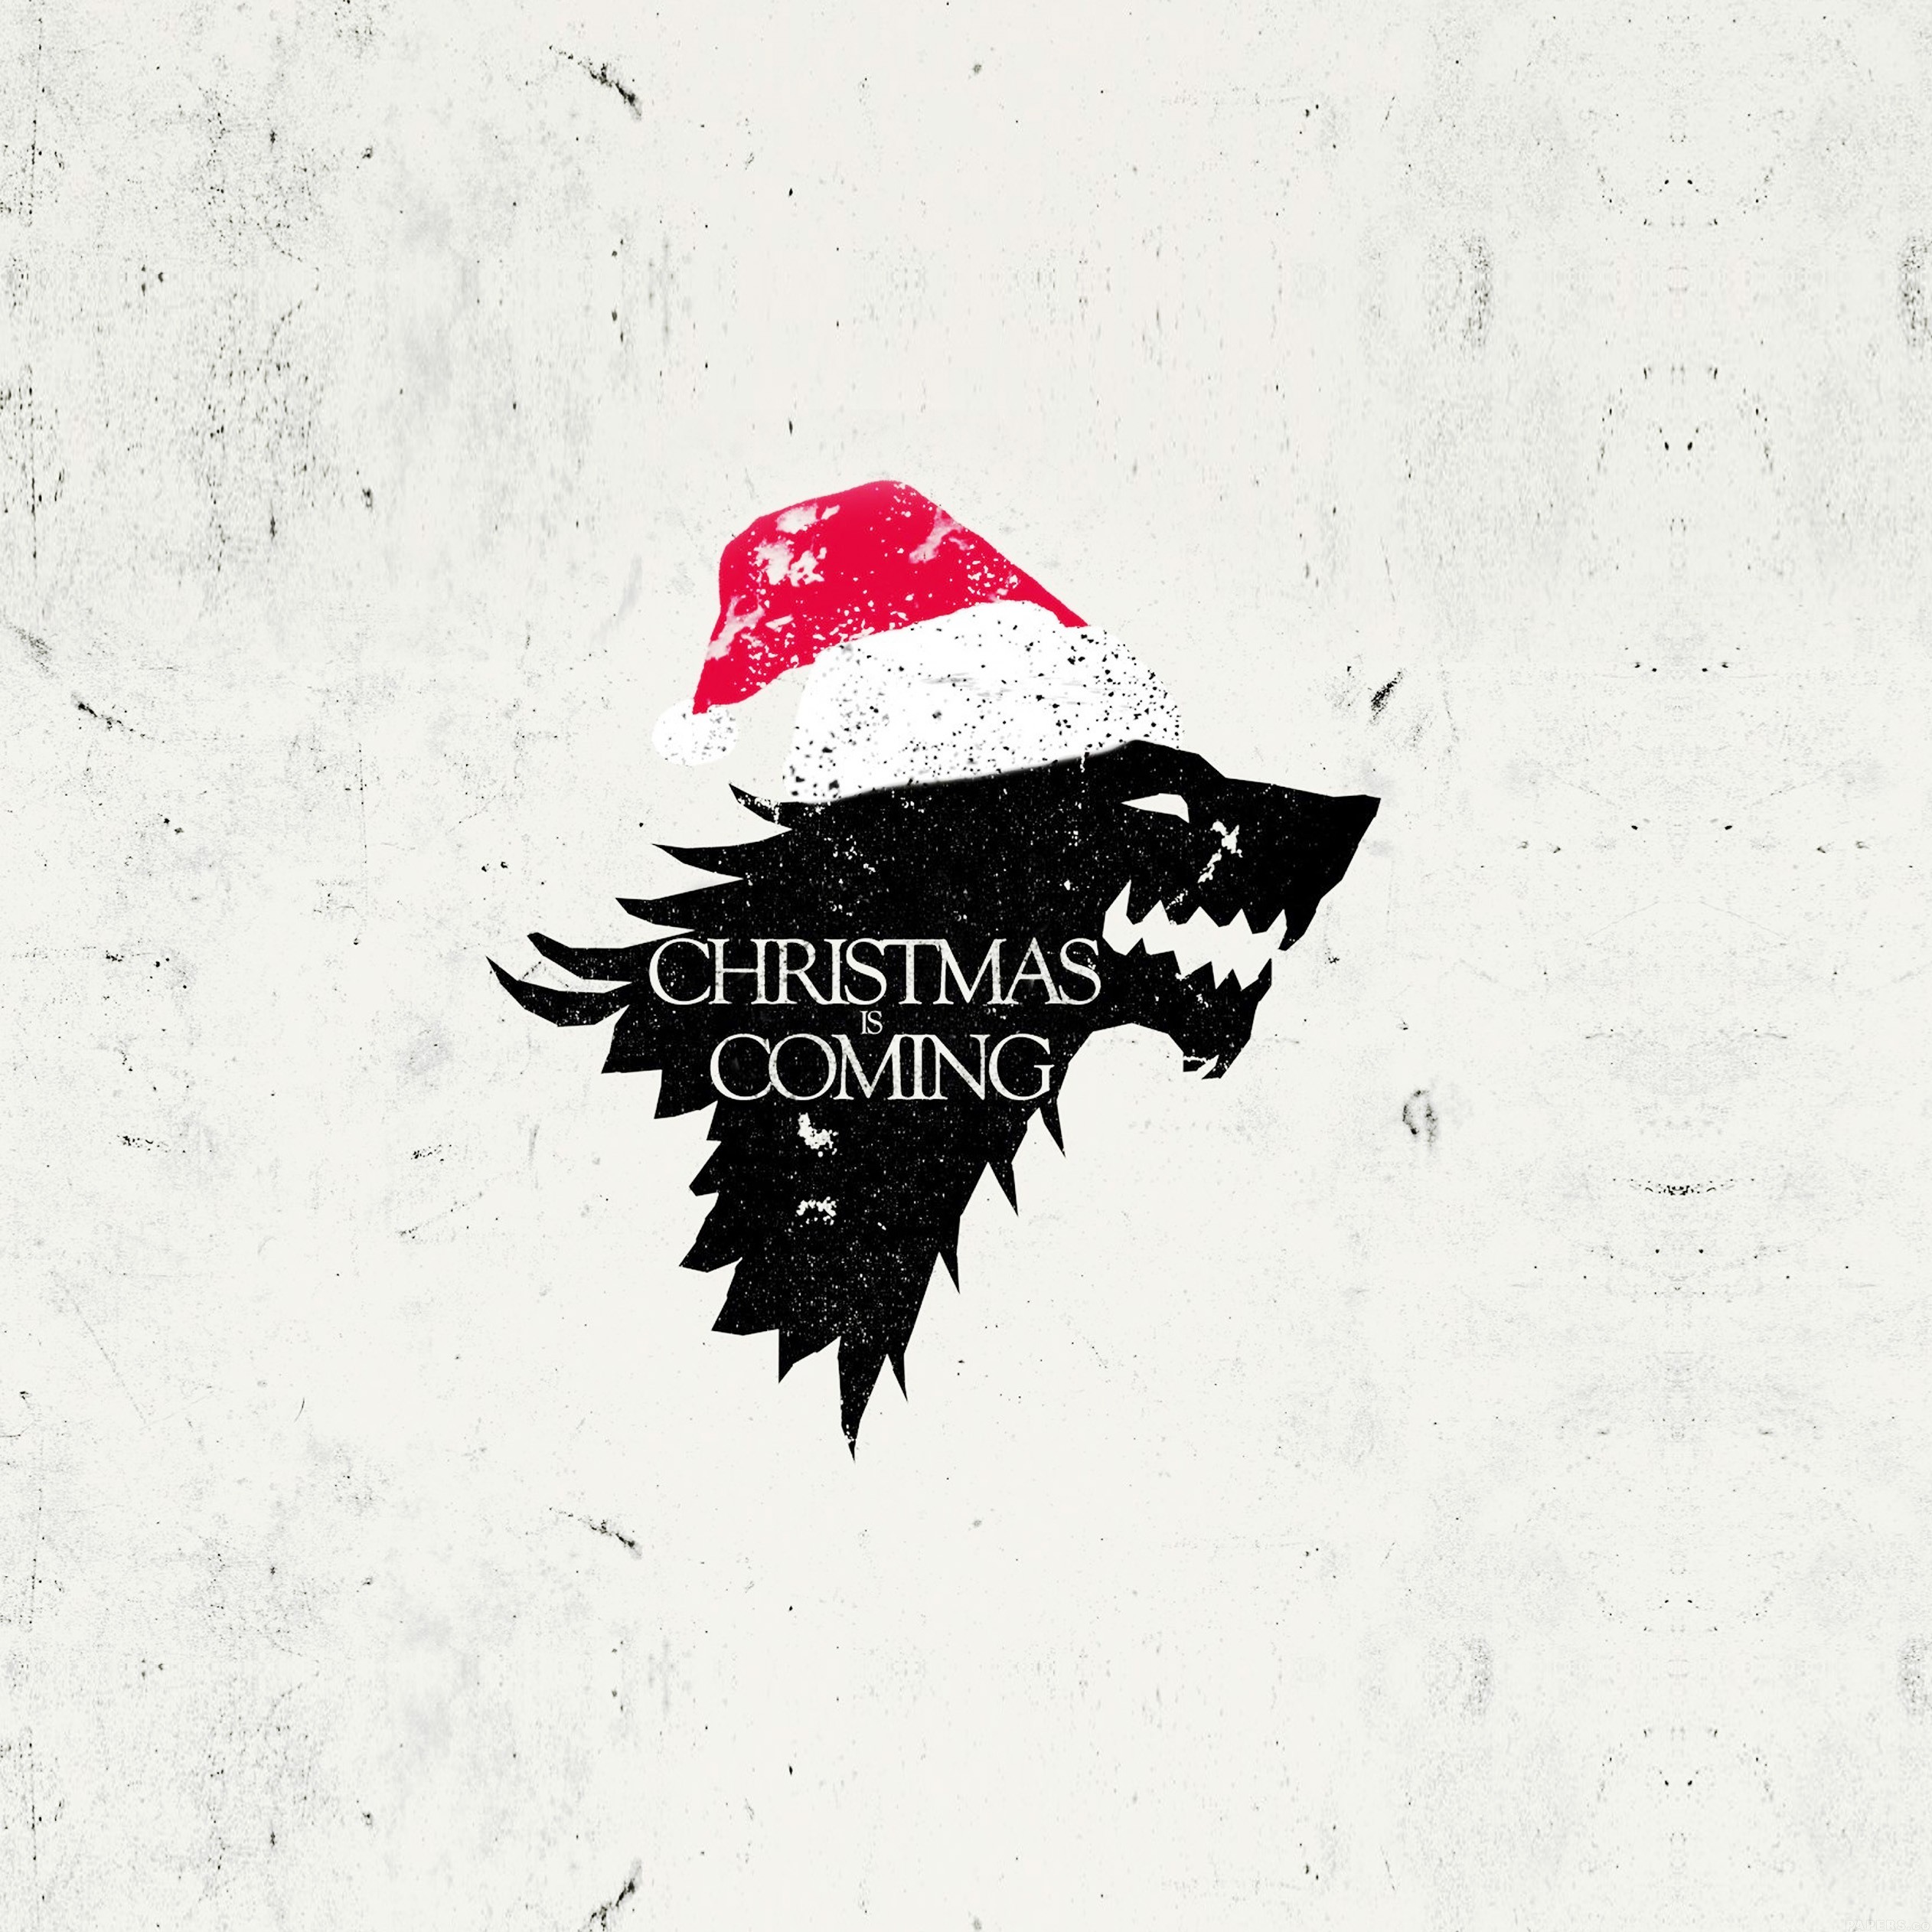 christmas is coming game of thrones art 9